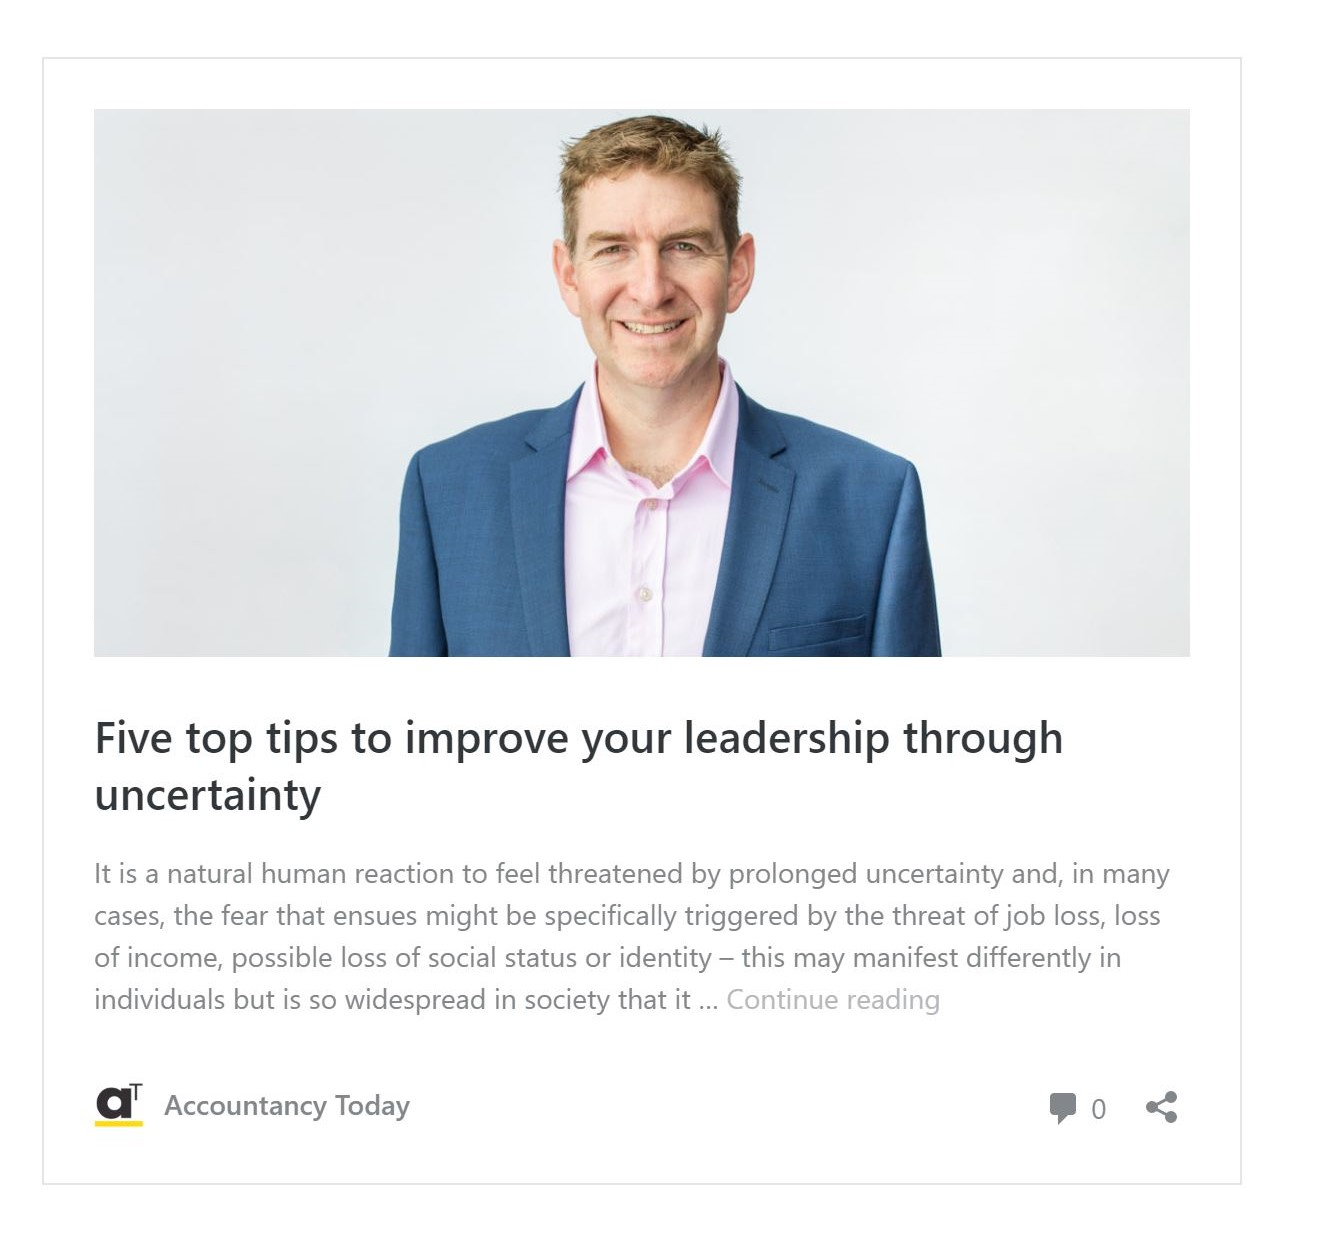 Five top tips to improve your leadership through uncertainty